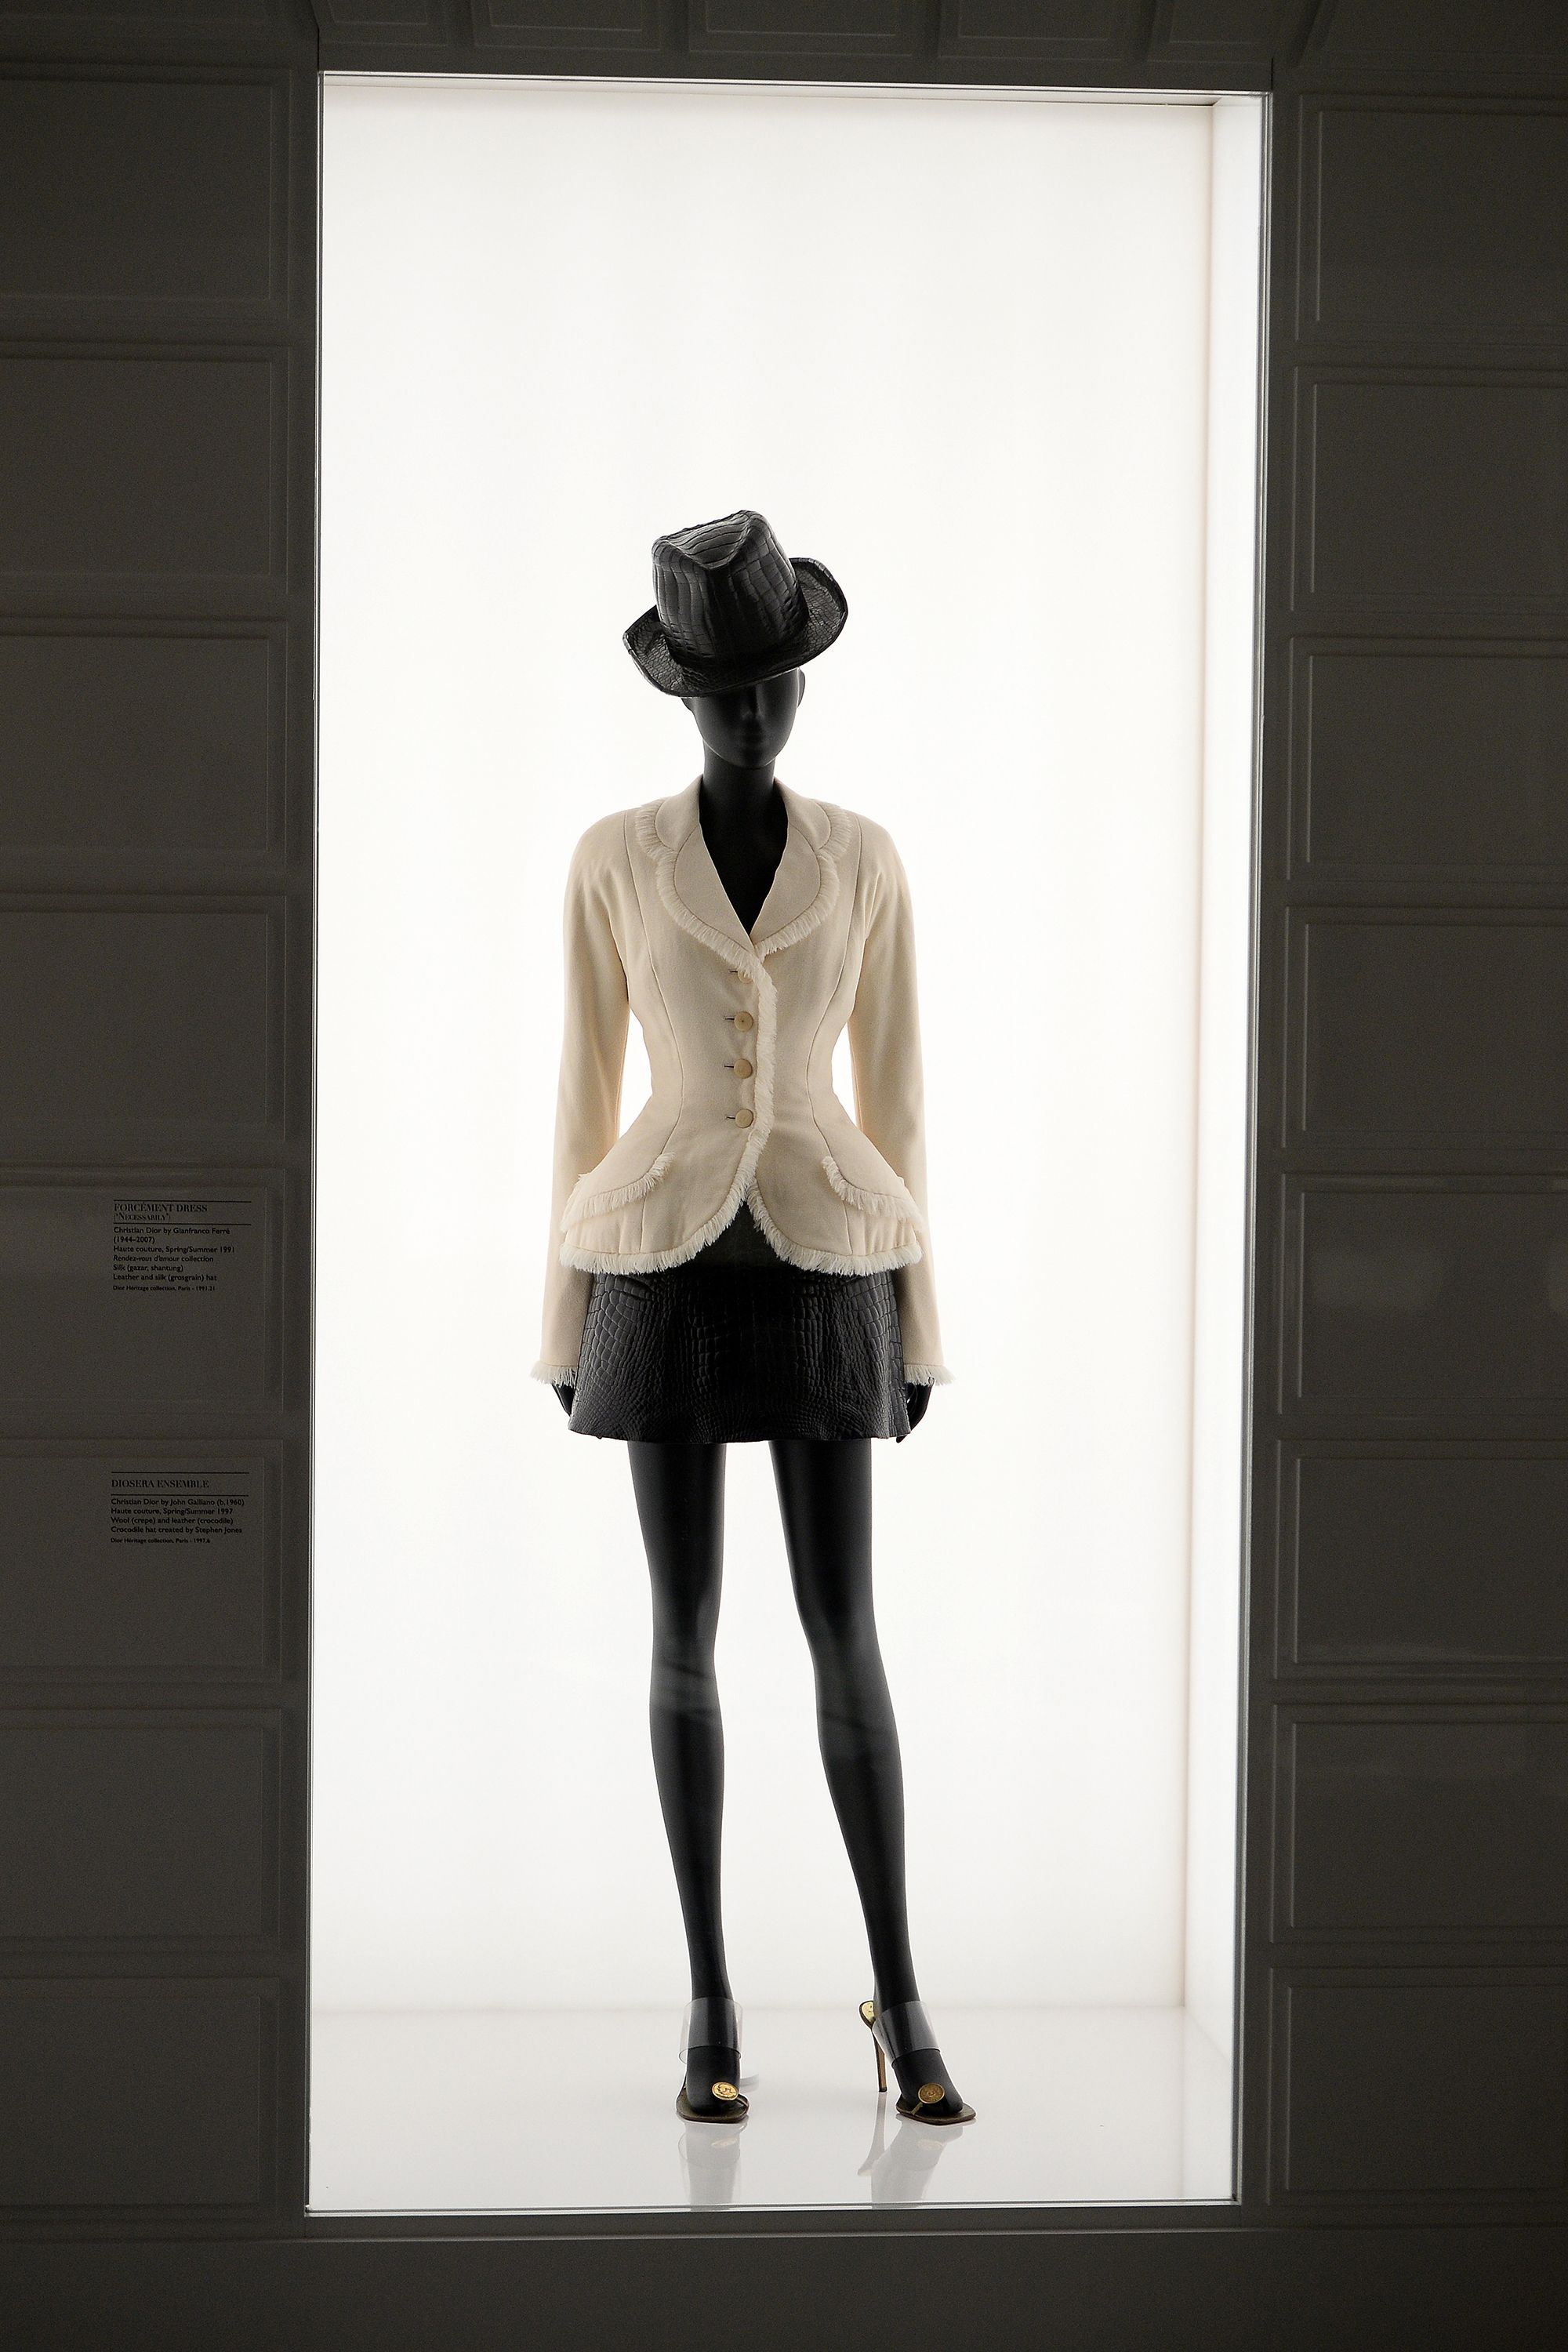 9cbfb2335be All of the Photos from the Christian Dior Exhibit at the V A Museum in  London